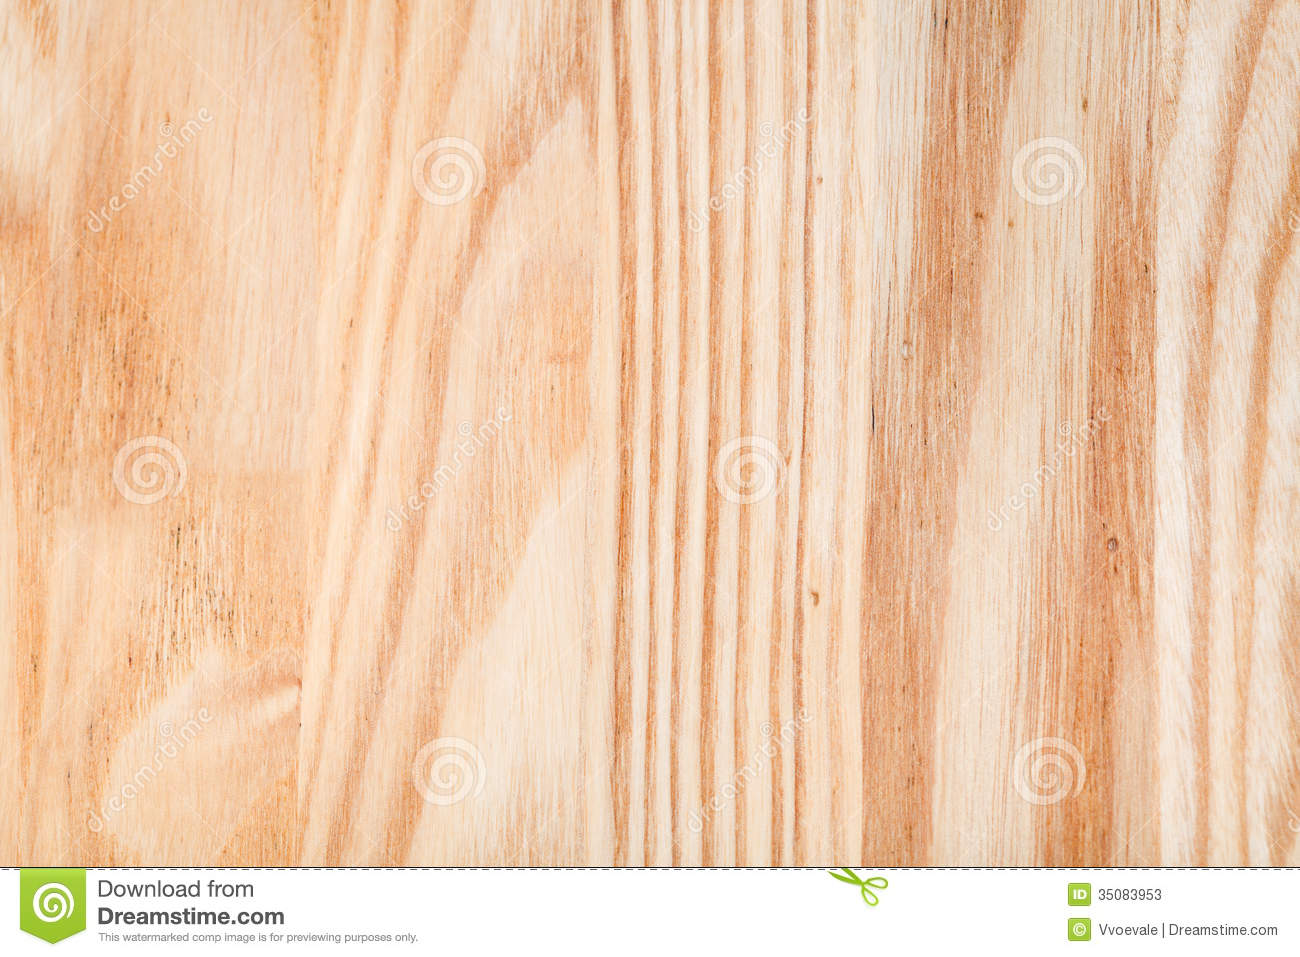 Stock Photos Fresh Sanded Oiled Ashwood Furniture Board Background Image35083953 on Natural Wood Furniture With Color